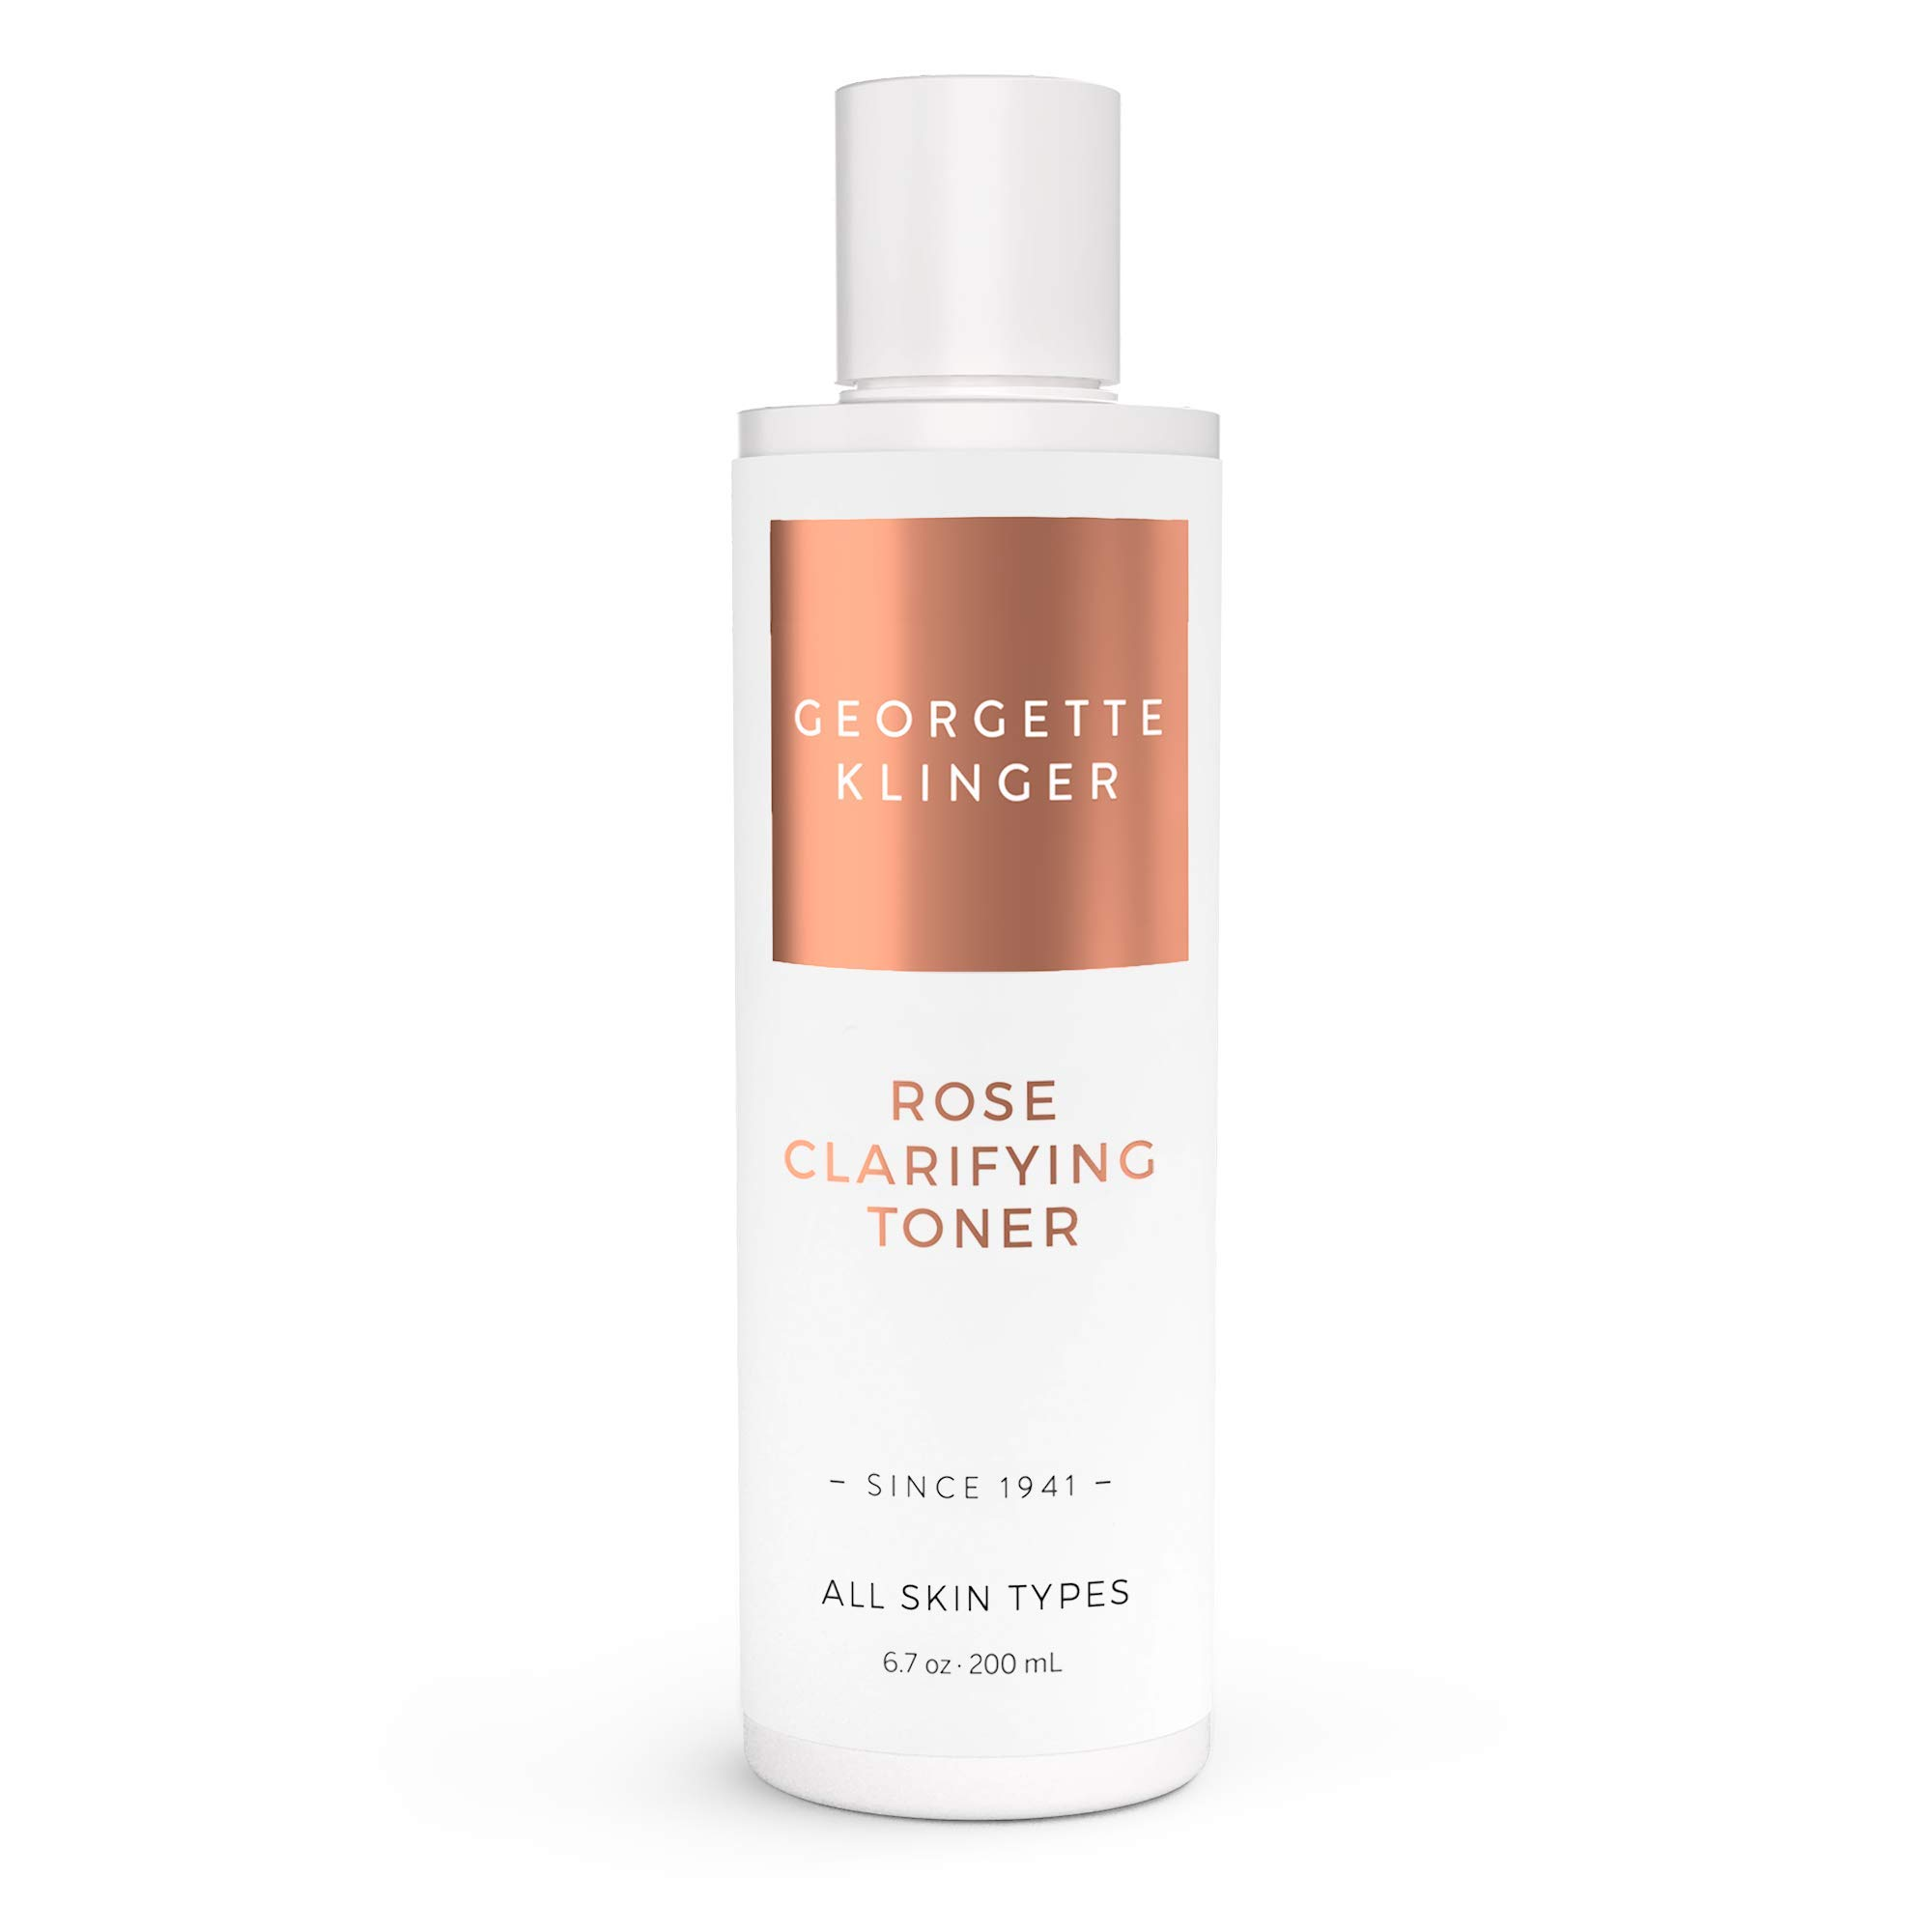 Rose Clarifying Face Toner By Georgette Klinger Skin Care – Alcohol & Fragrance Free Facial Astringent to Deep Clean, Hydrate and Soften Skin for a Clear, Even Complexion